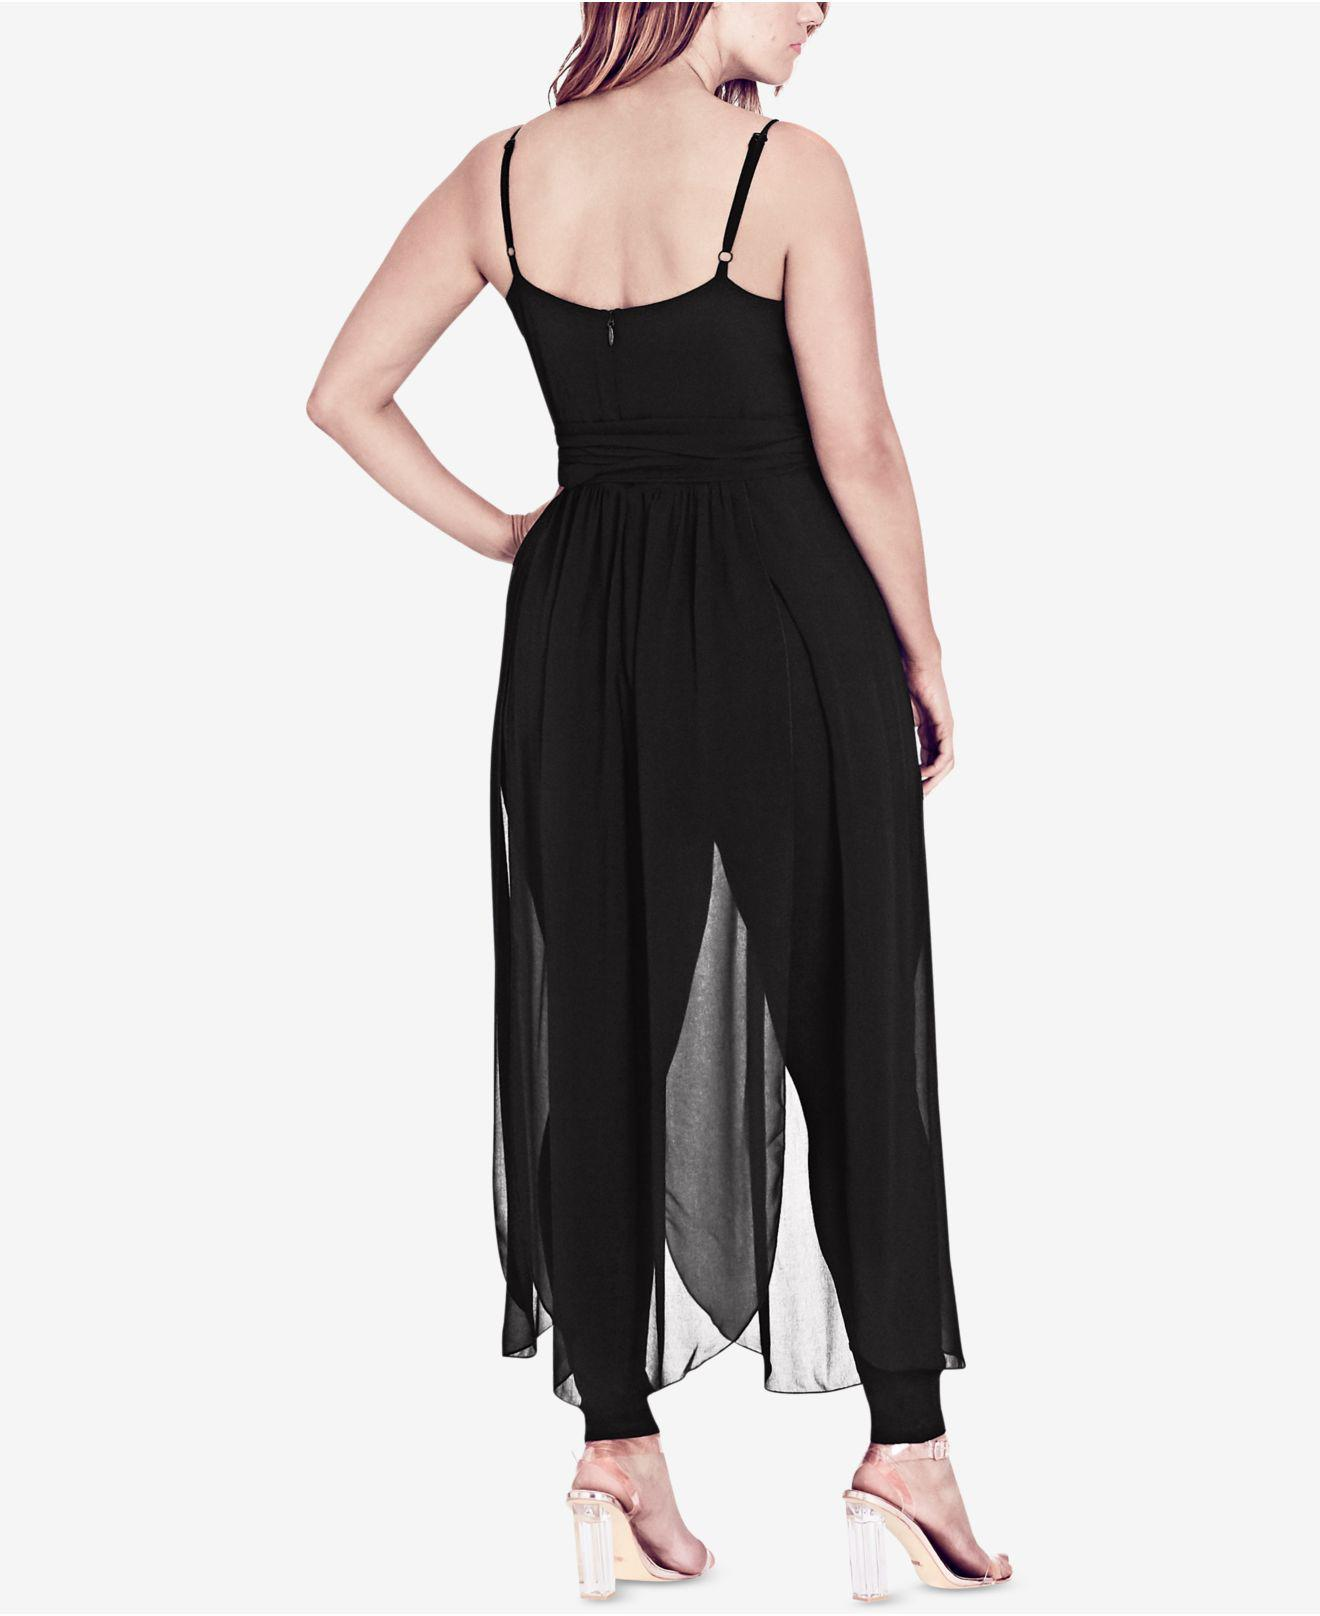 a935d7397354 City Chic Trendy Plus Size Sheer-skirt Jumpsuit in Black - Lyst